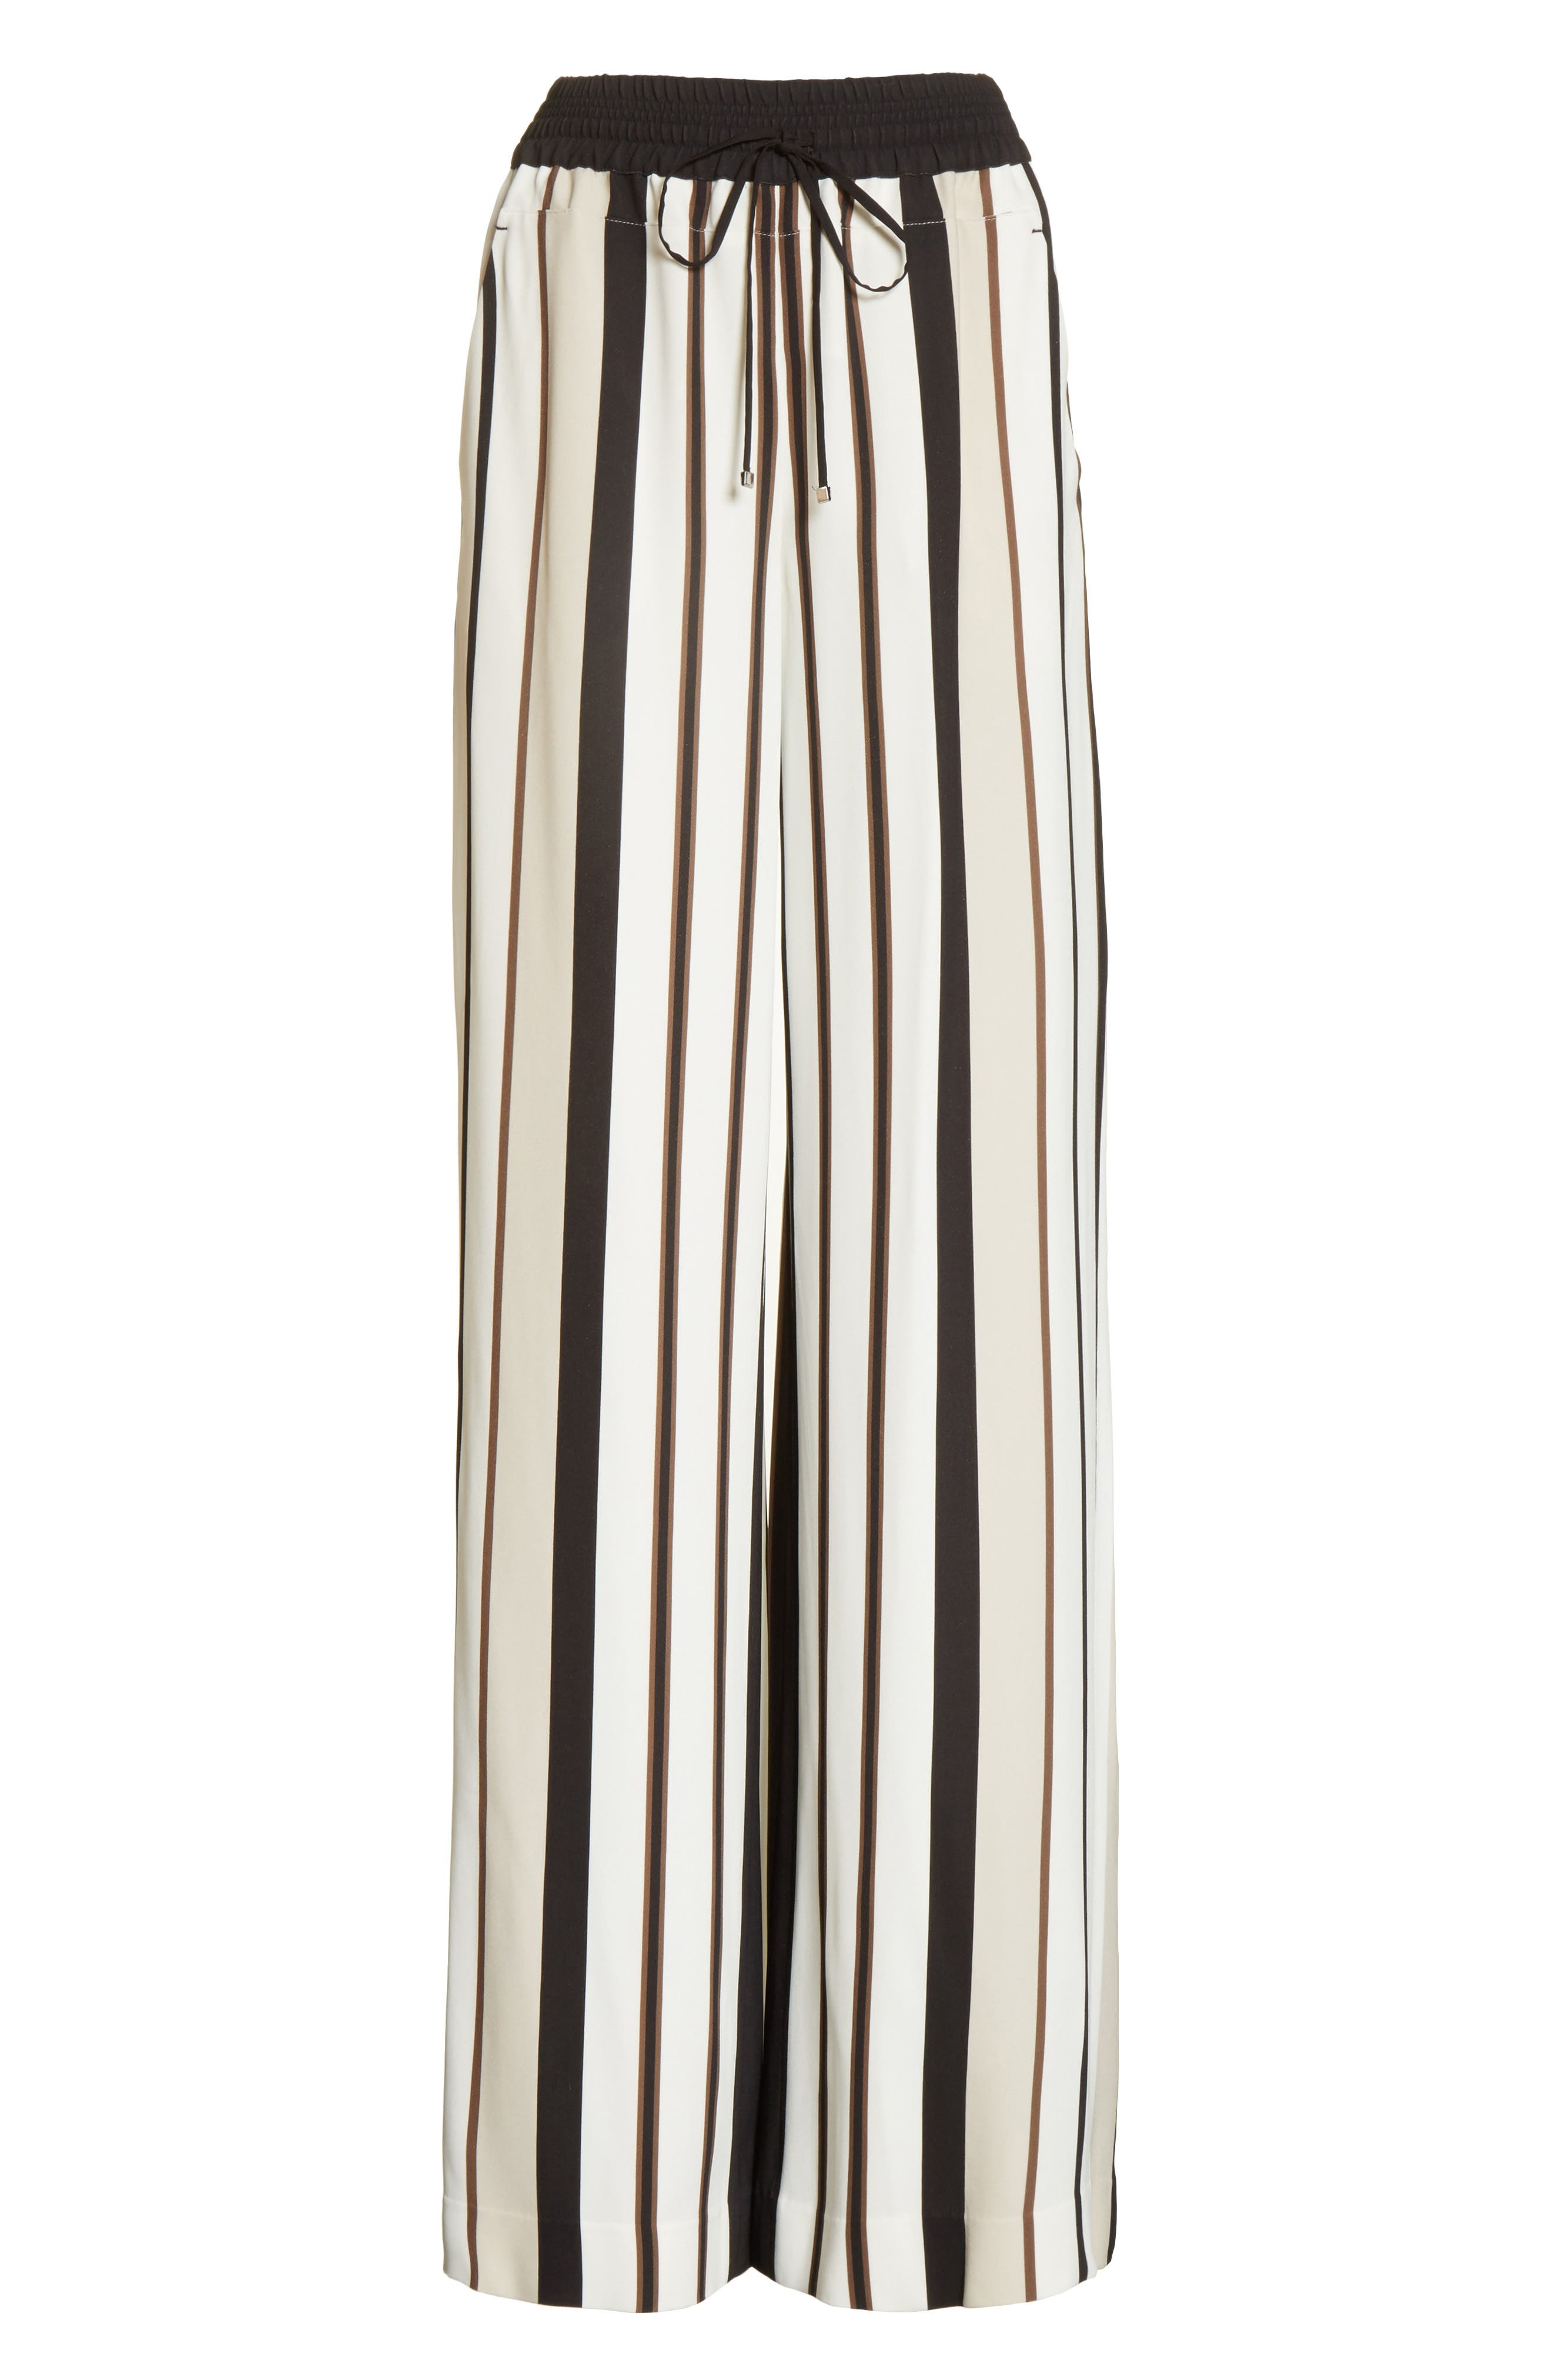 LAFAYETTE 148 NEW YORK,                             Allen Legacy Stripe Drape Cloth Pants,                             Alternate thumbnail 6, color,                             001